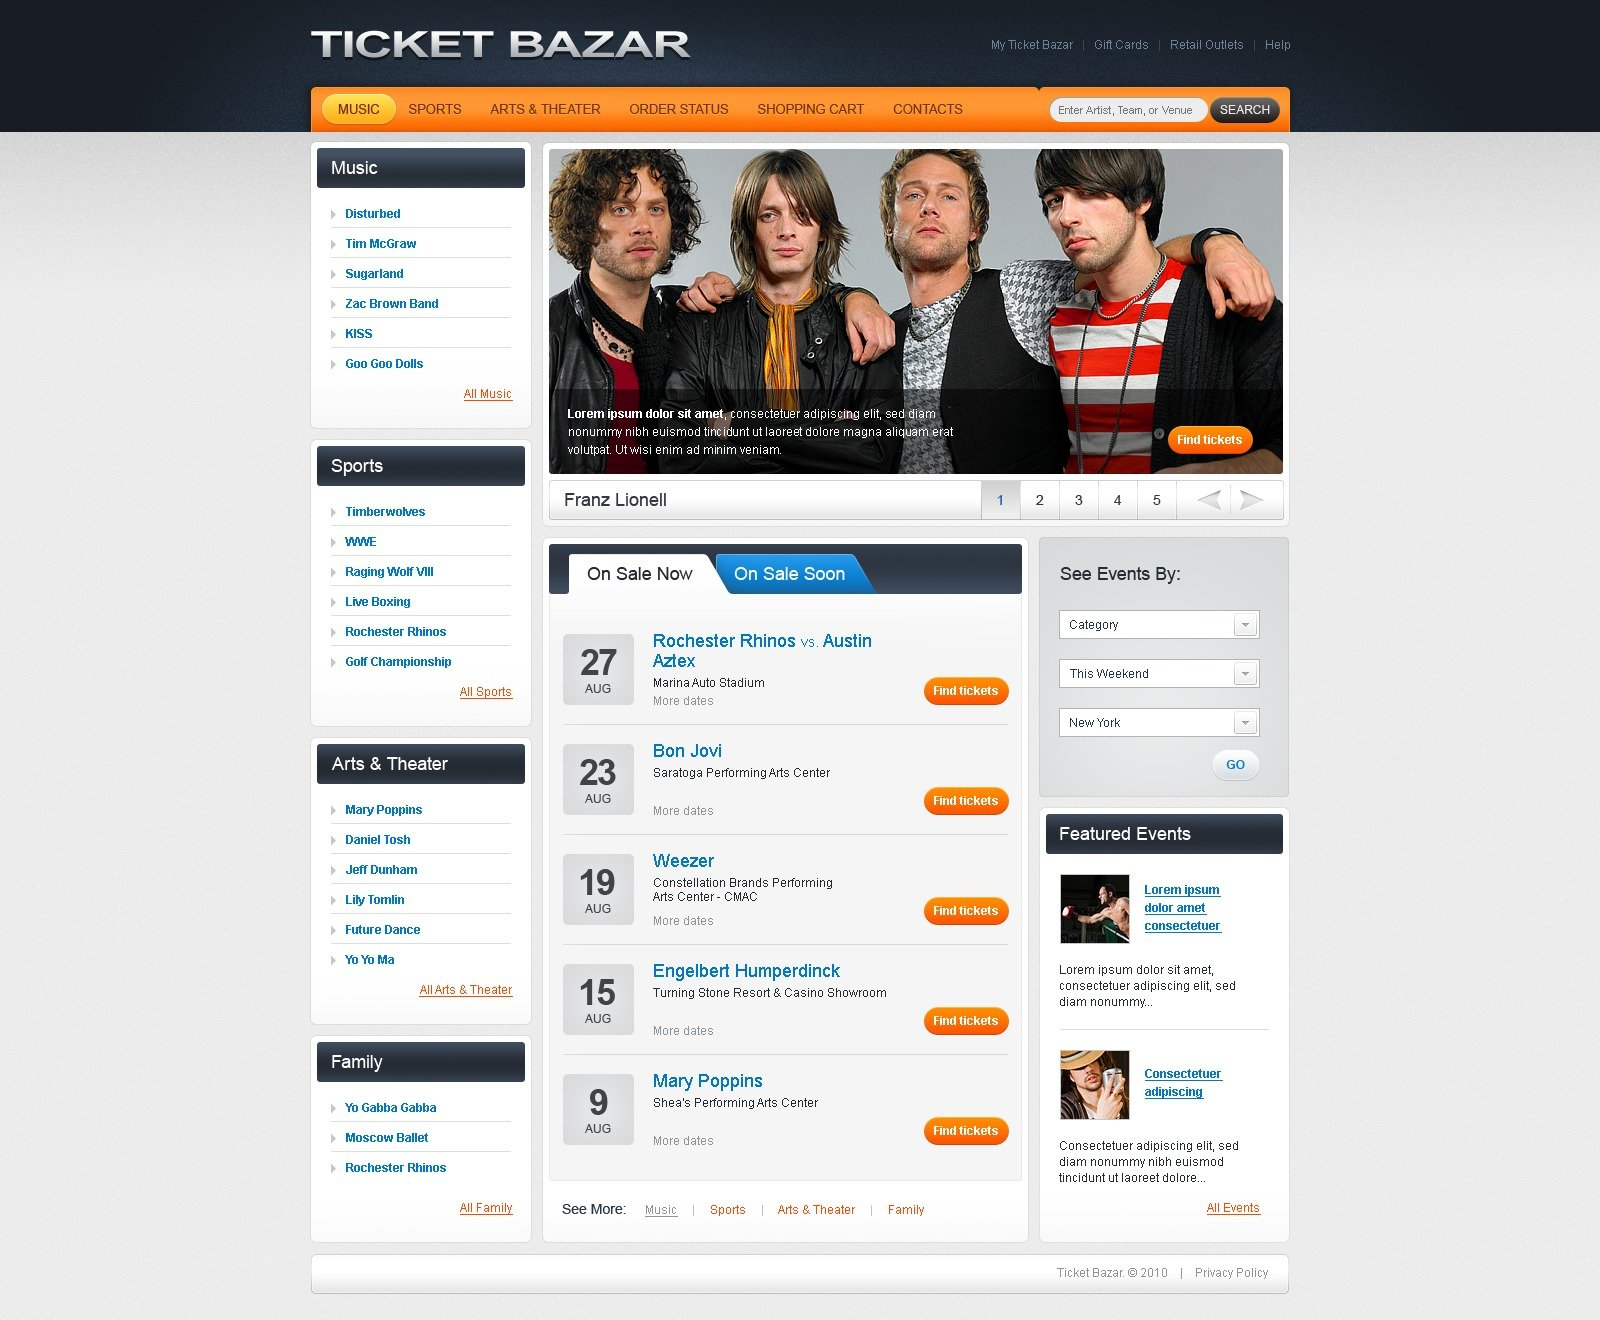 The Ticket Bazar PSD Design 54151, one of the best PSD templates of its kind (portal, entertainment, most popular, wide, jquery), also known as ticket bazar PSD template, online portal PSD template, music PSD template, concerts PSD template, sports PSD template, art PSD template, theatre PSD template, cinema PSD template, movies PSD template, TV family PSD template, sale PSD template, performance PSD template, categories PSD template, events PSD template, reservation PSD template, exchange PSD template, date PSD template, cancellation PSD template, interest PSD template, order PSD template, discount PSD template, highlights PSD template, services PSD template, searching and related with ticket bazar, online portal, music, concerts, sports, art, theatre, cinema, movies, TV family, sale, performance, categories, events, reservation, exchange, date, cancellation, interest, order, discount, highlights, services, searching, etc.